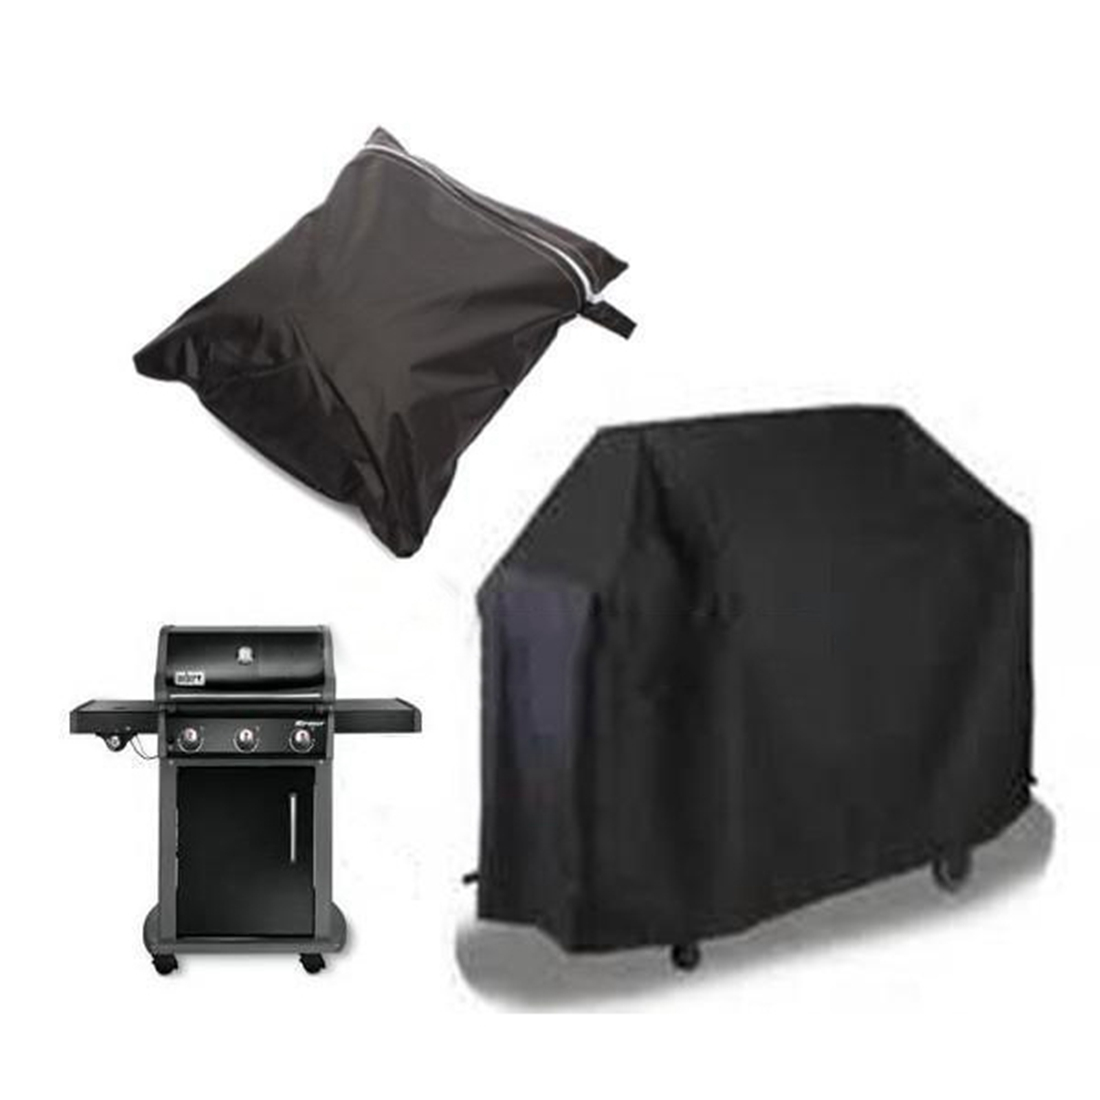 Practical 100x60x150cm Waterproof BBQ Cover Gas Barbecue Grill Protection Patio Outdoor Indoor Black